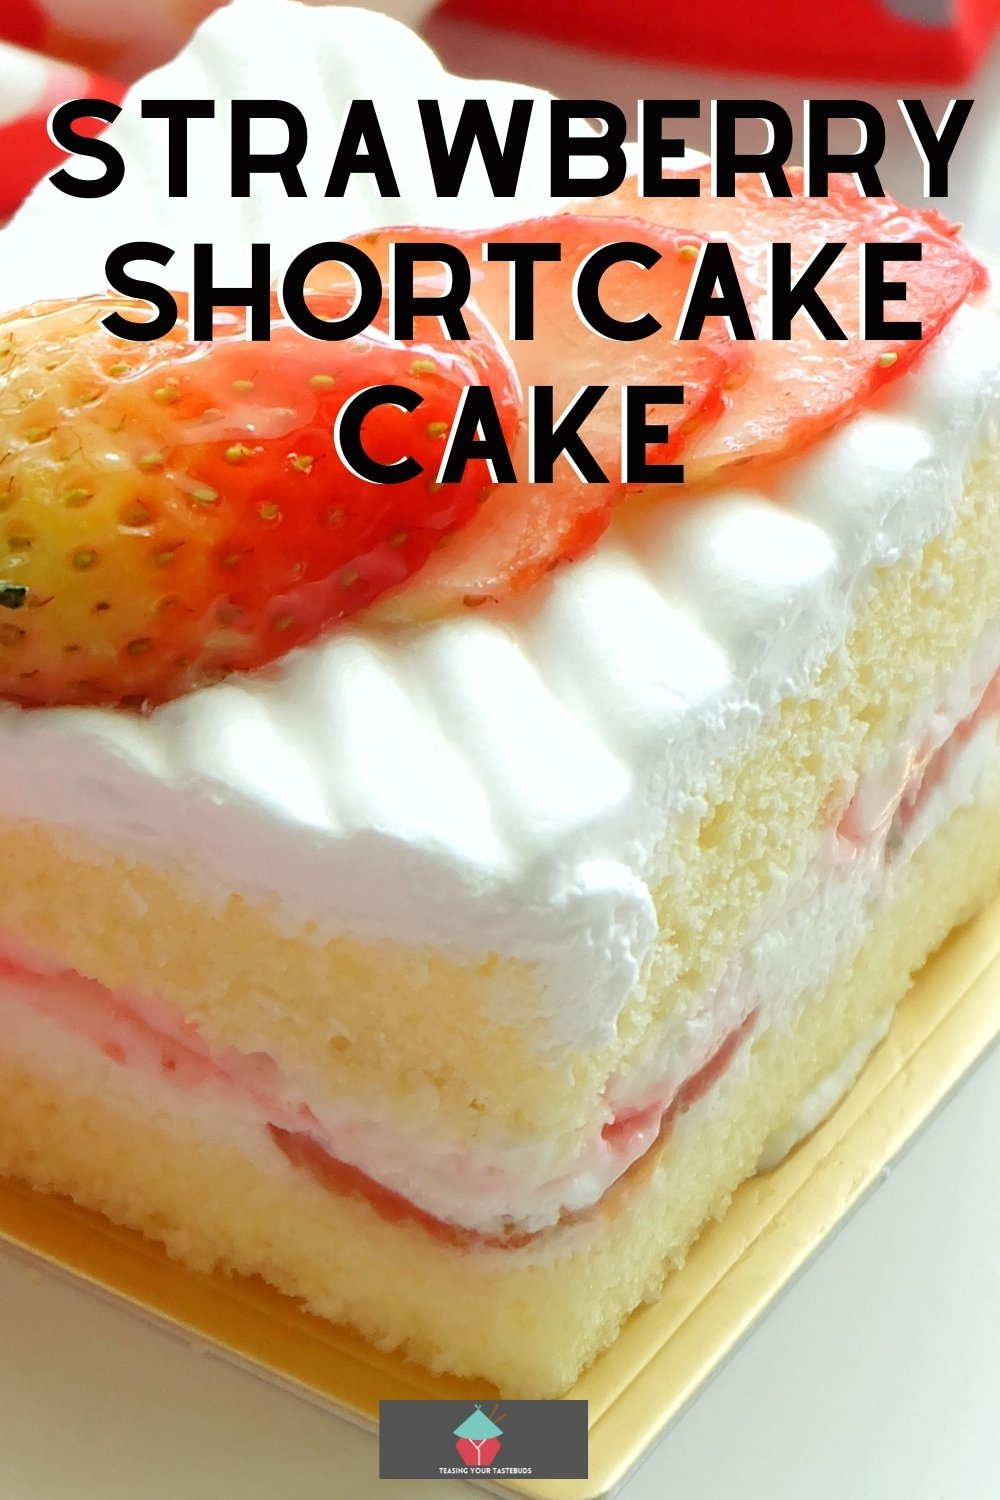 Strawberry Shortcake Cake, a wonderful refreshing cake packed with fresh strawberries and a whipped cream frosting.